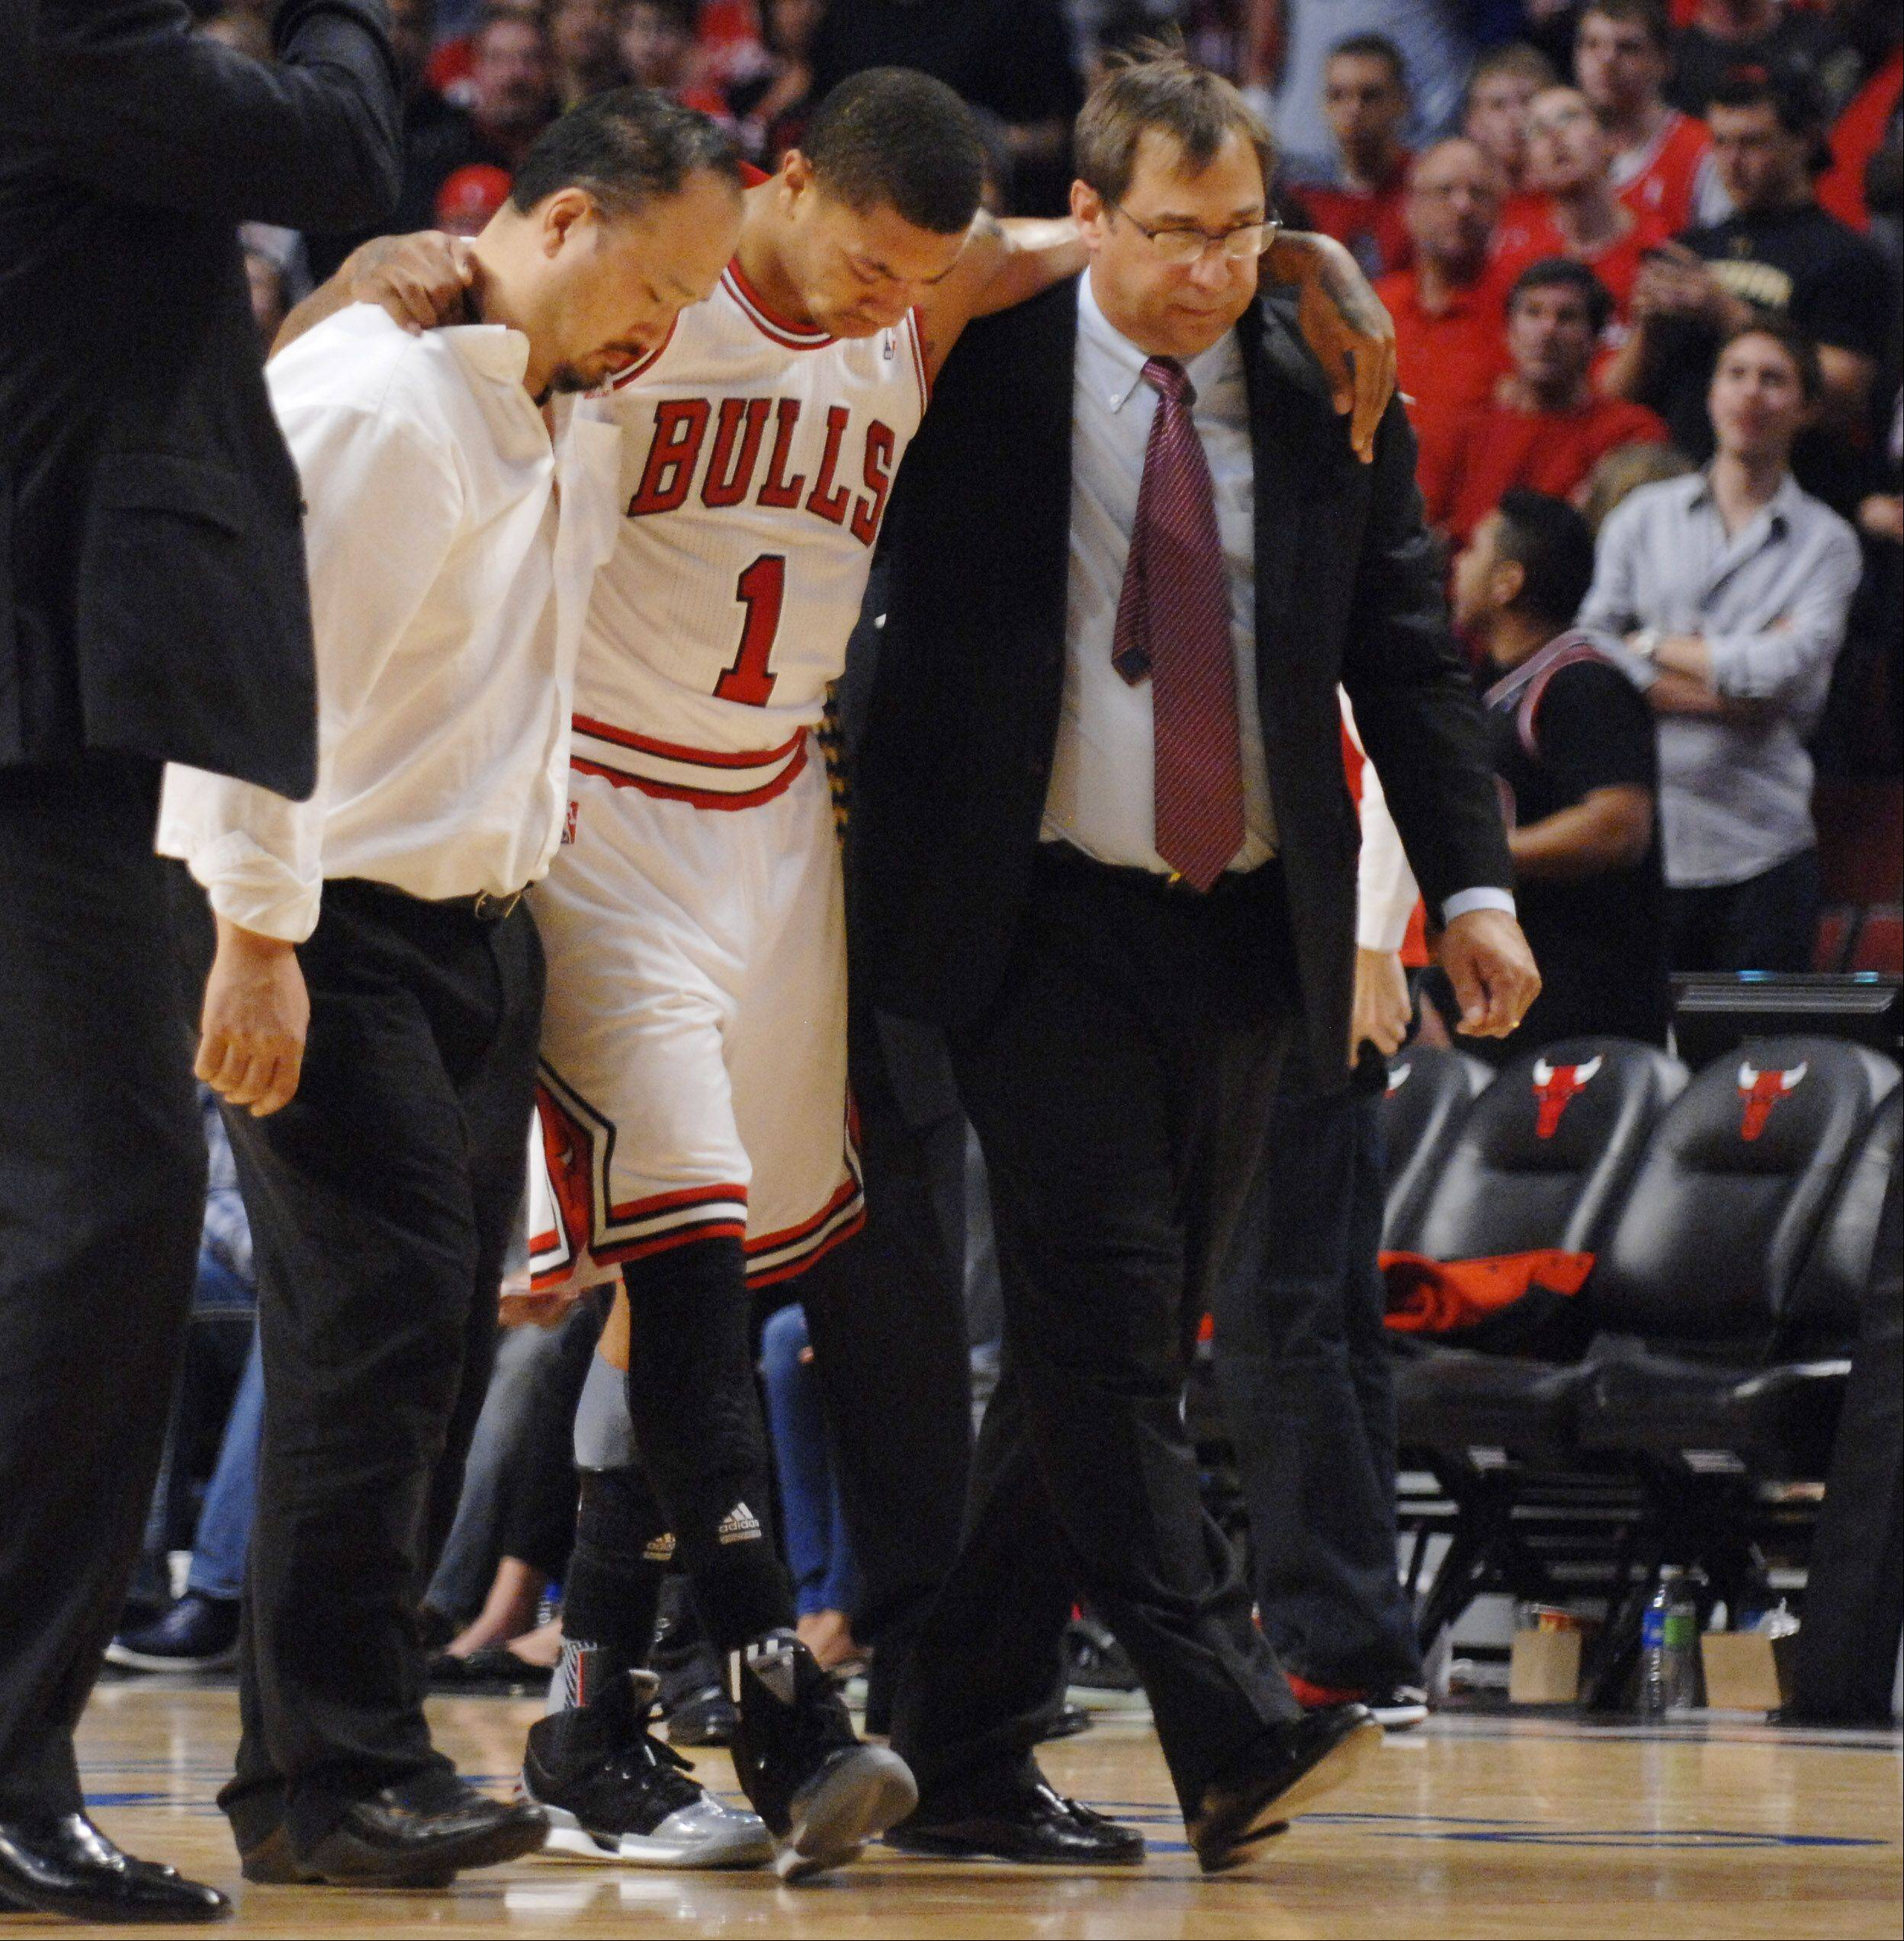 Chicago Bulls point guard Derrick Rose gets help off the floor after sustaining an injury Saturday in the fourth quarter.